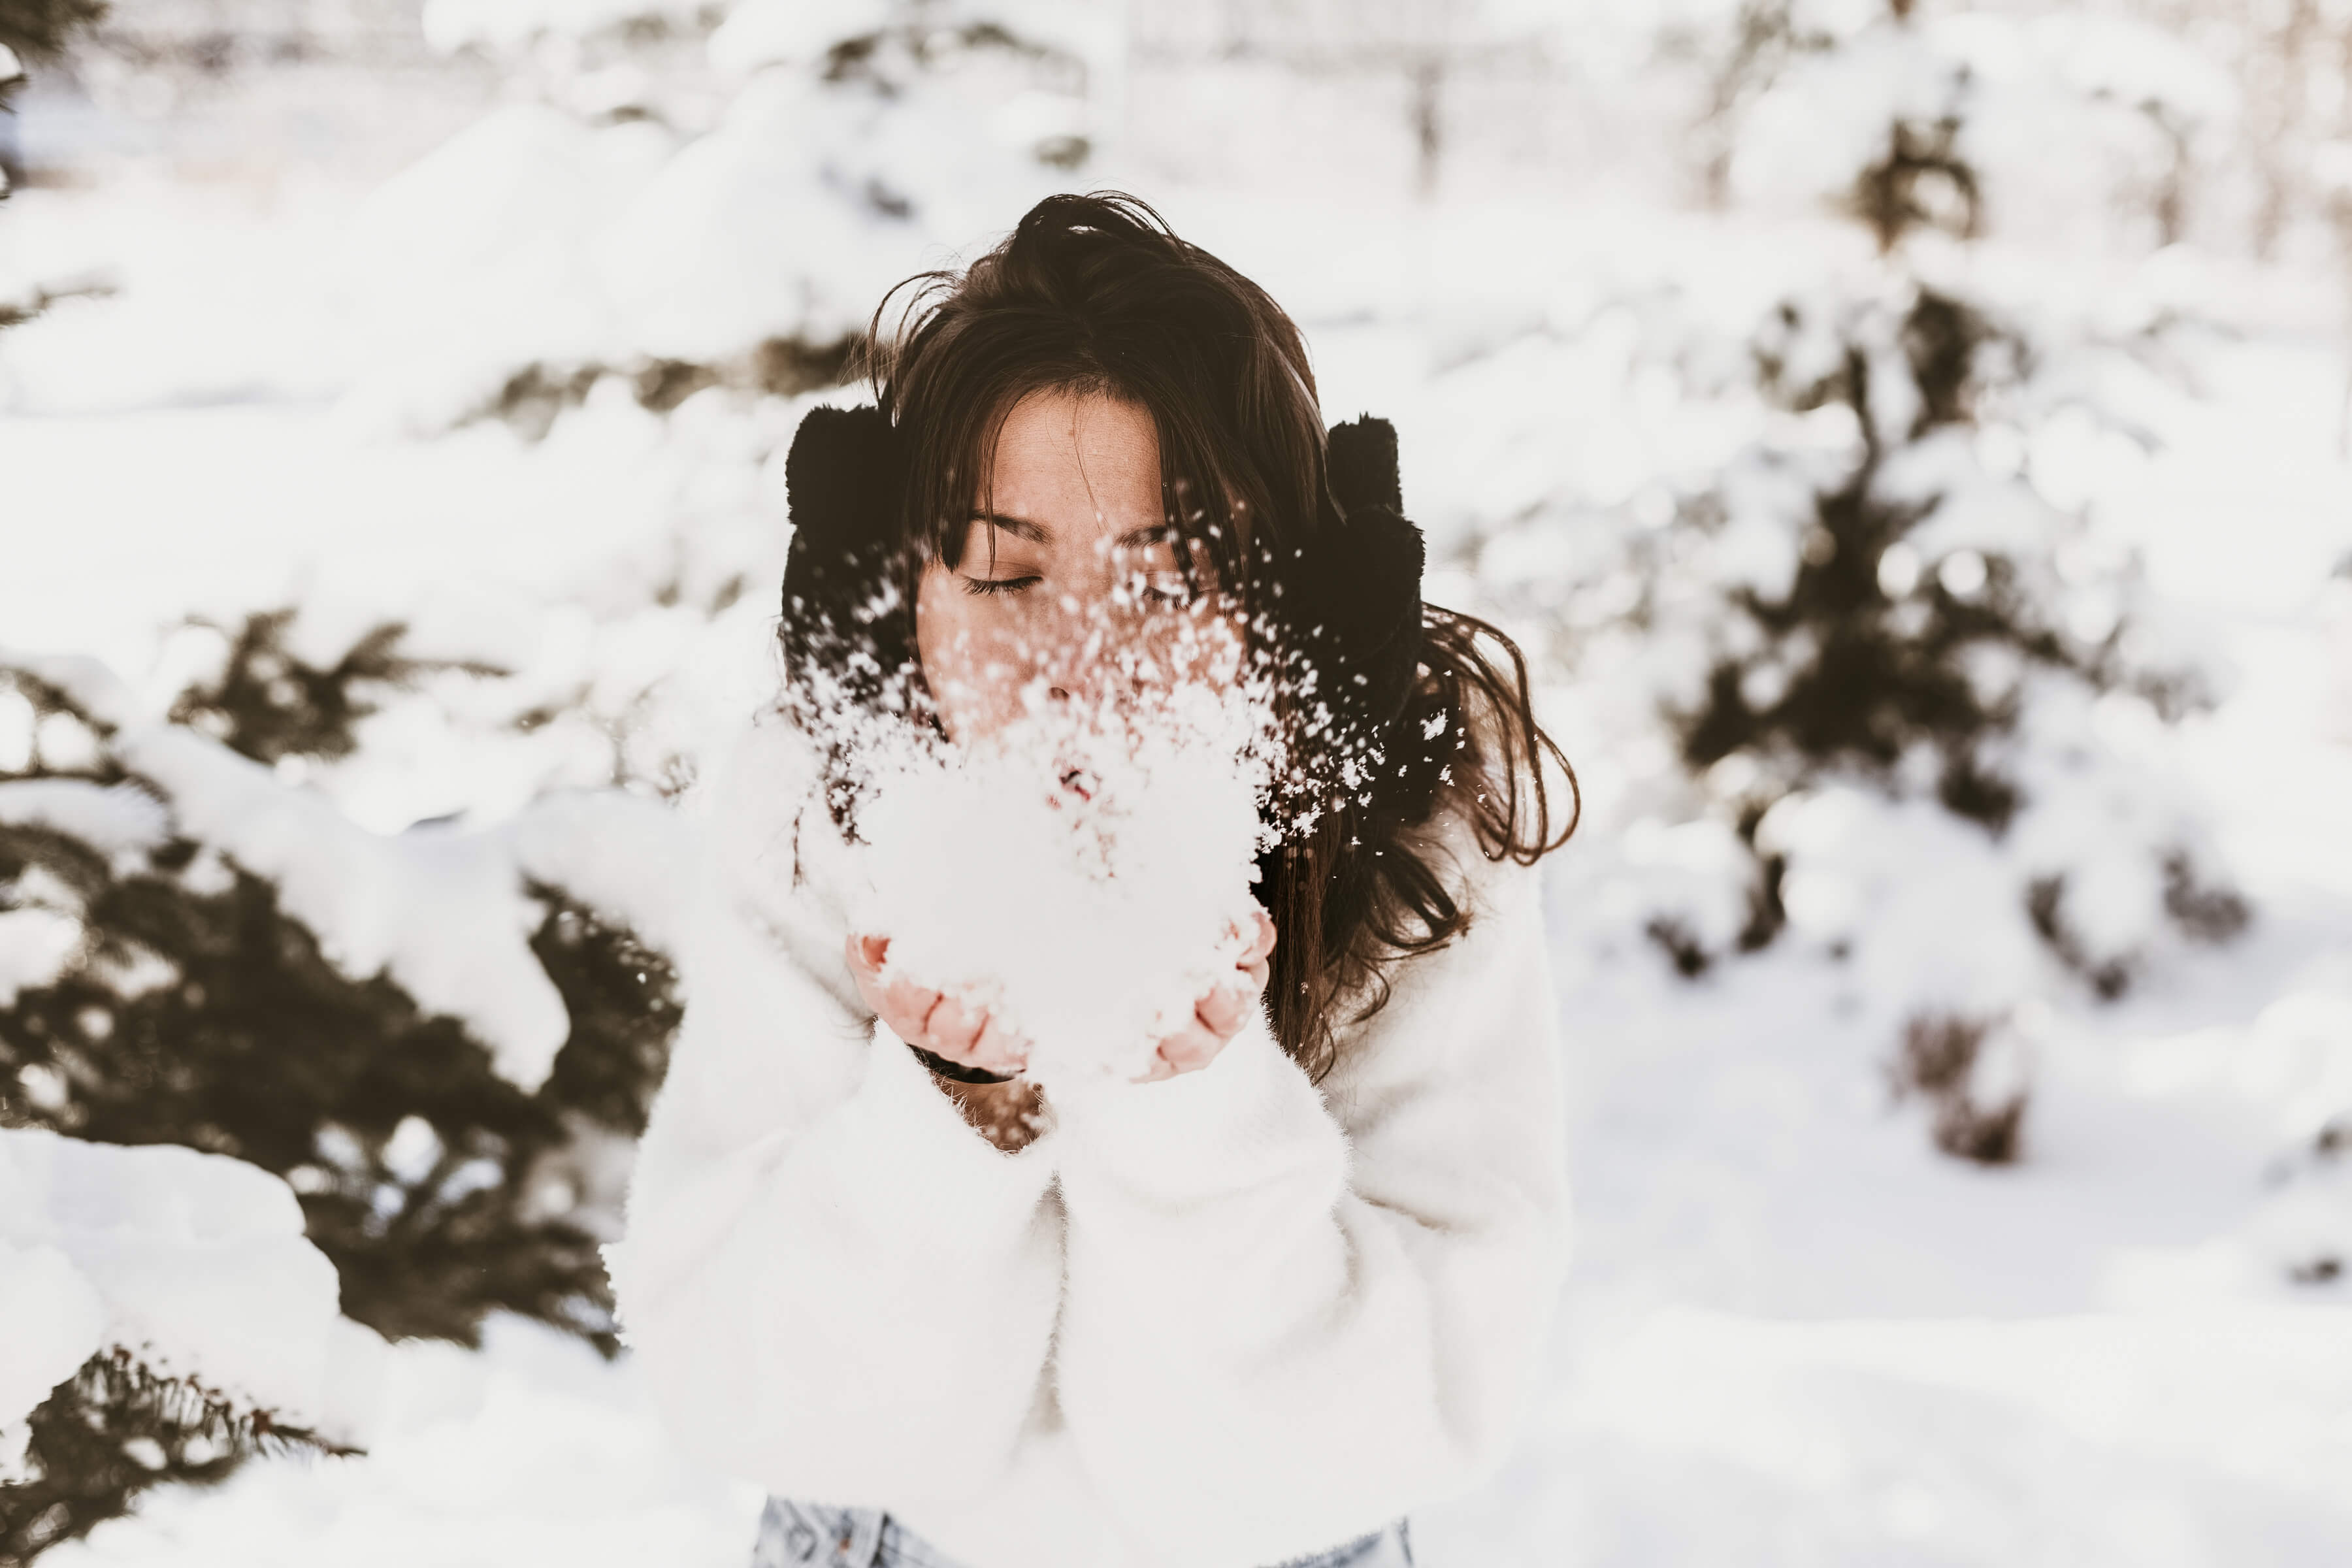 girl blowing snow to the camera. Winter self care ideas & my daily self care routine for cold days